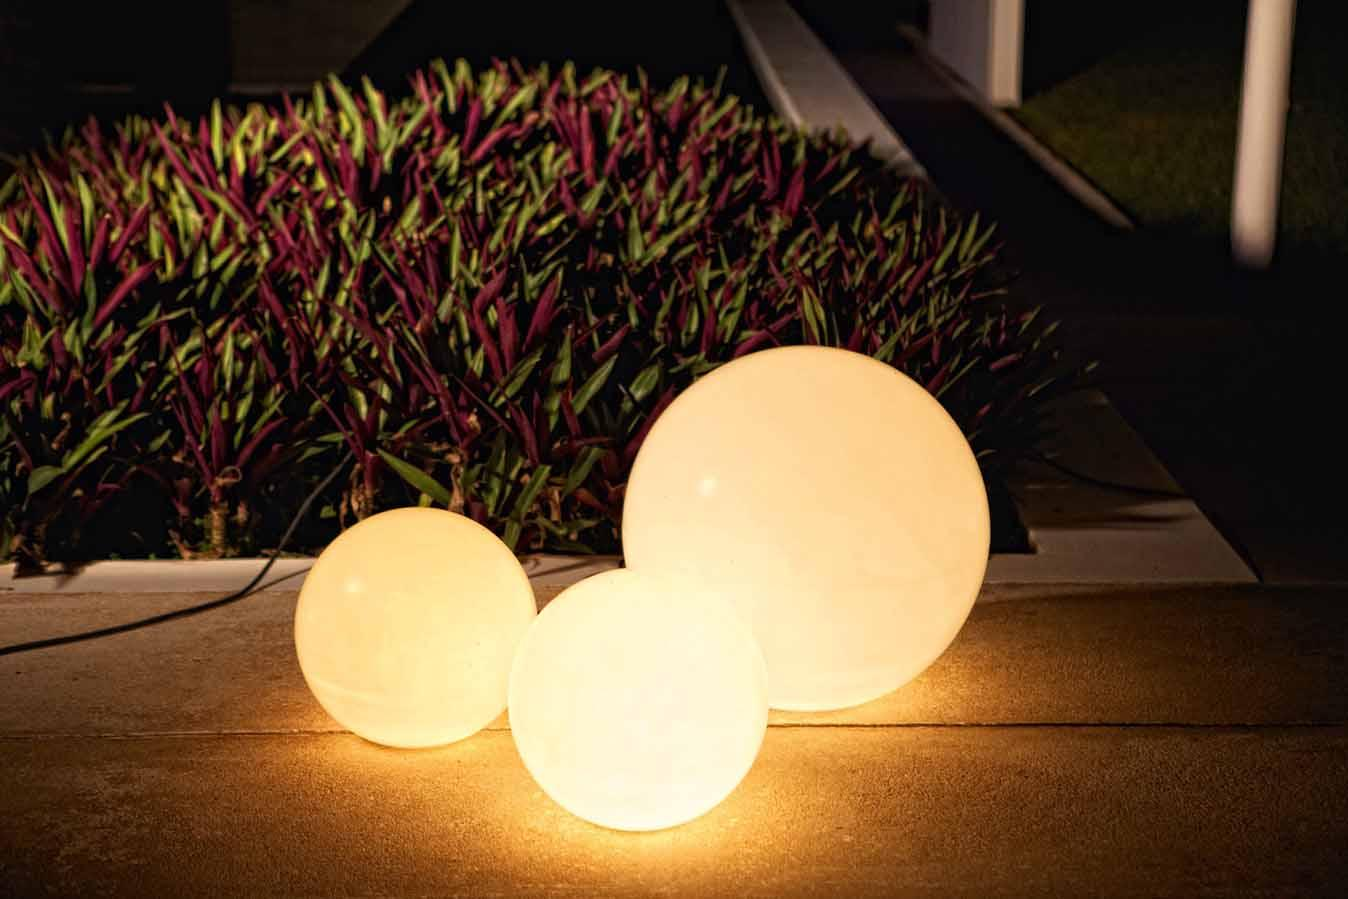 Globe outdoor lights provides an aesthetic look to the home globe outdoor lights provides an aesthetic look to the home aloadofball Images